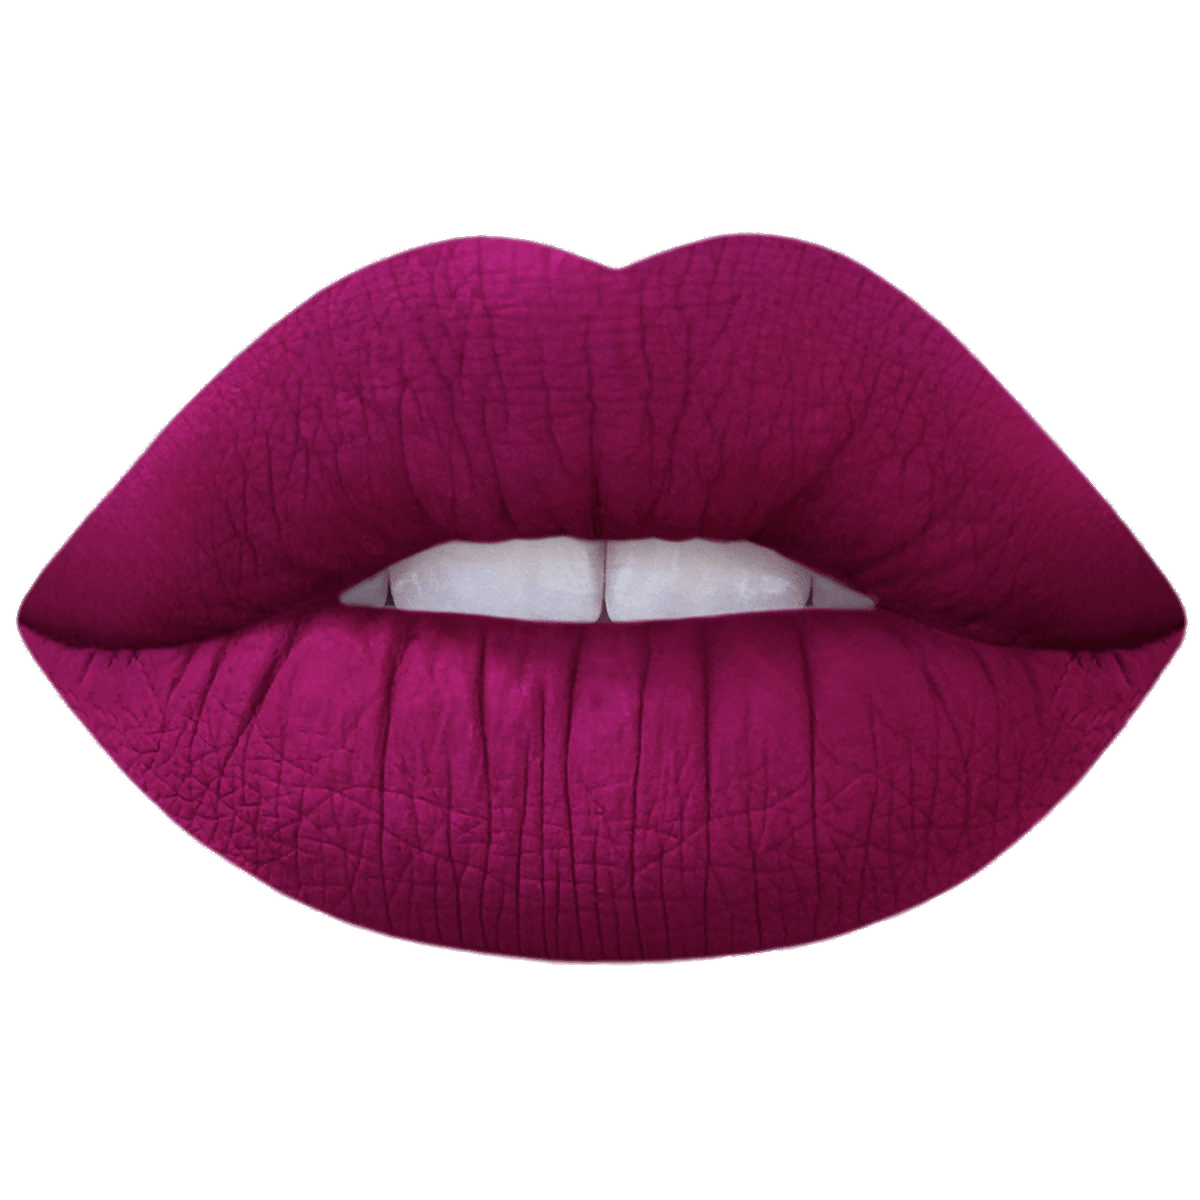 Lips vector png. Berry red lipstick on